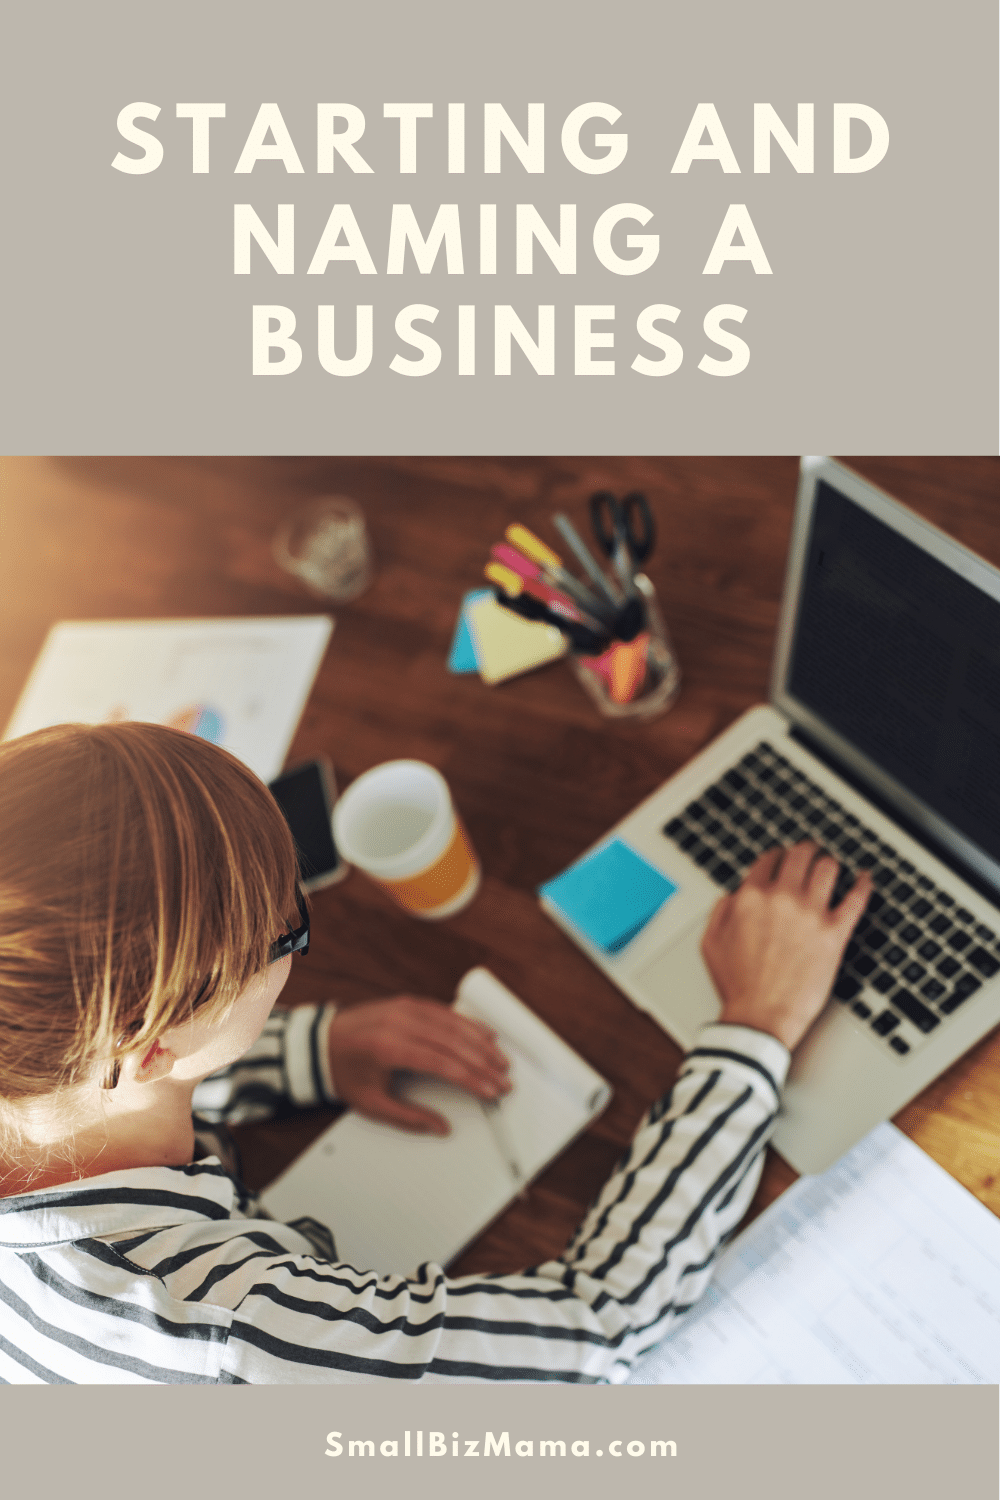 Starting and naming a business